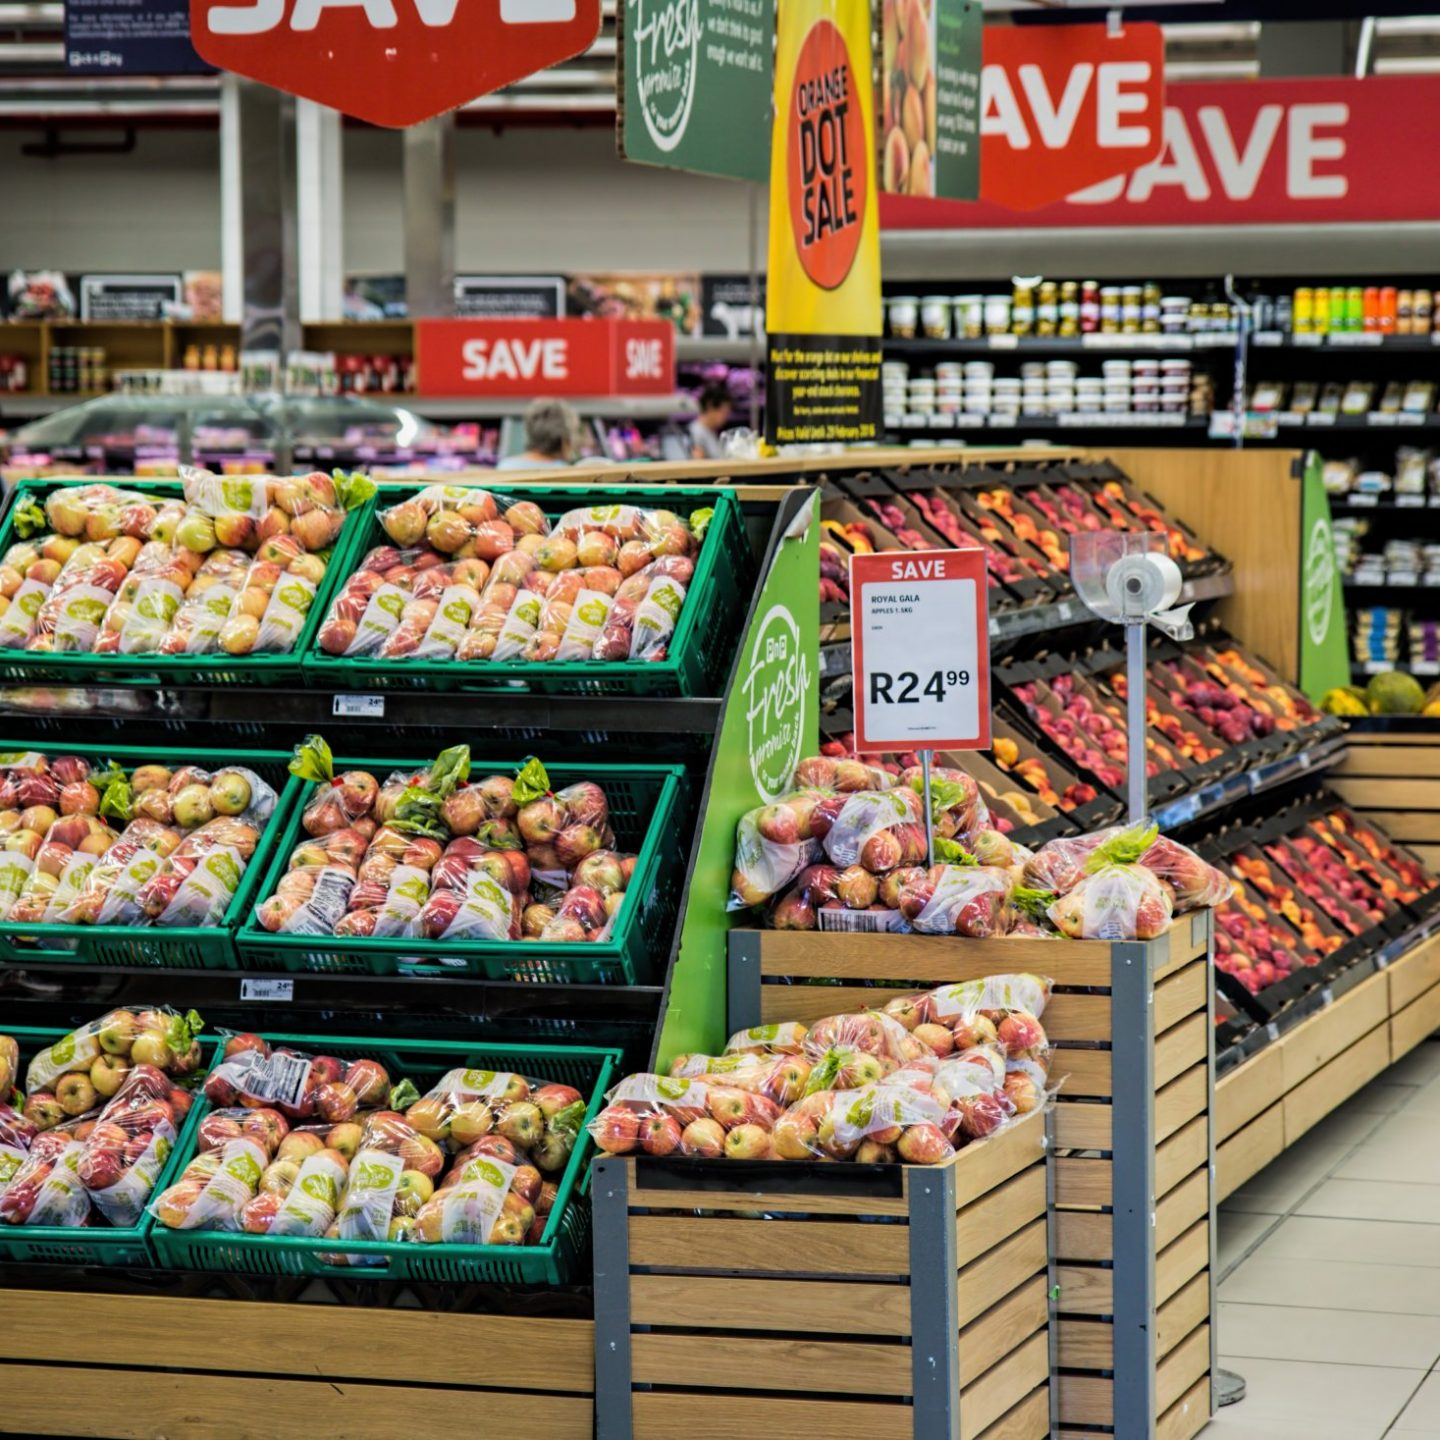 5 Ways To Make Healthy Choices When Shopping For Your Kids